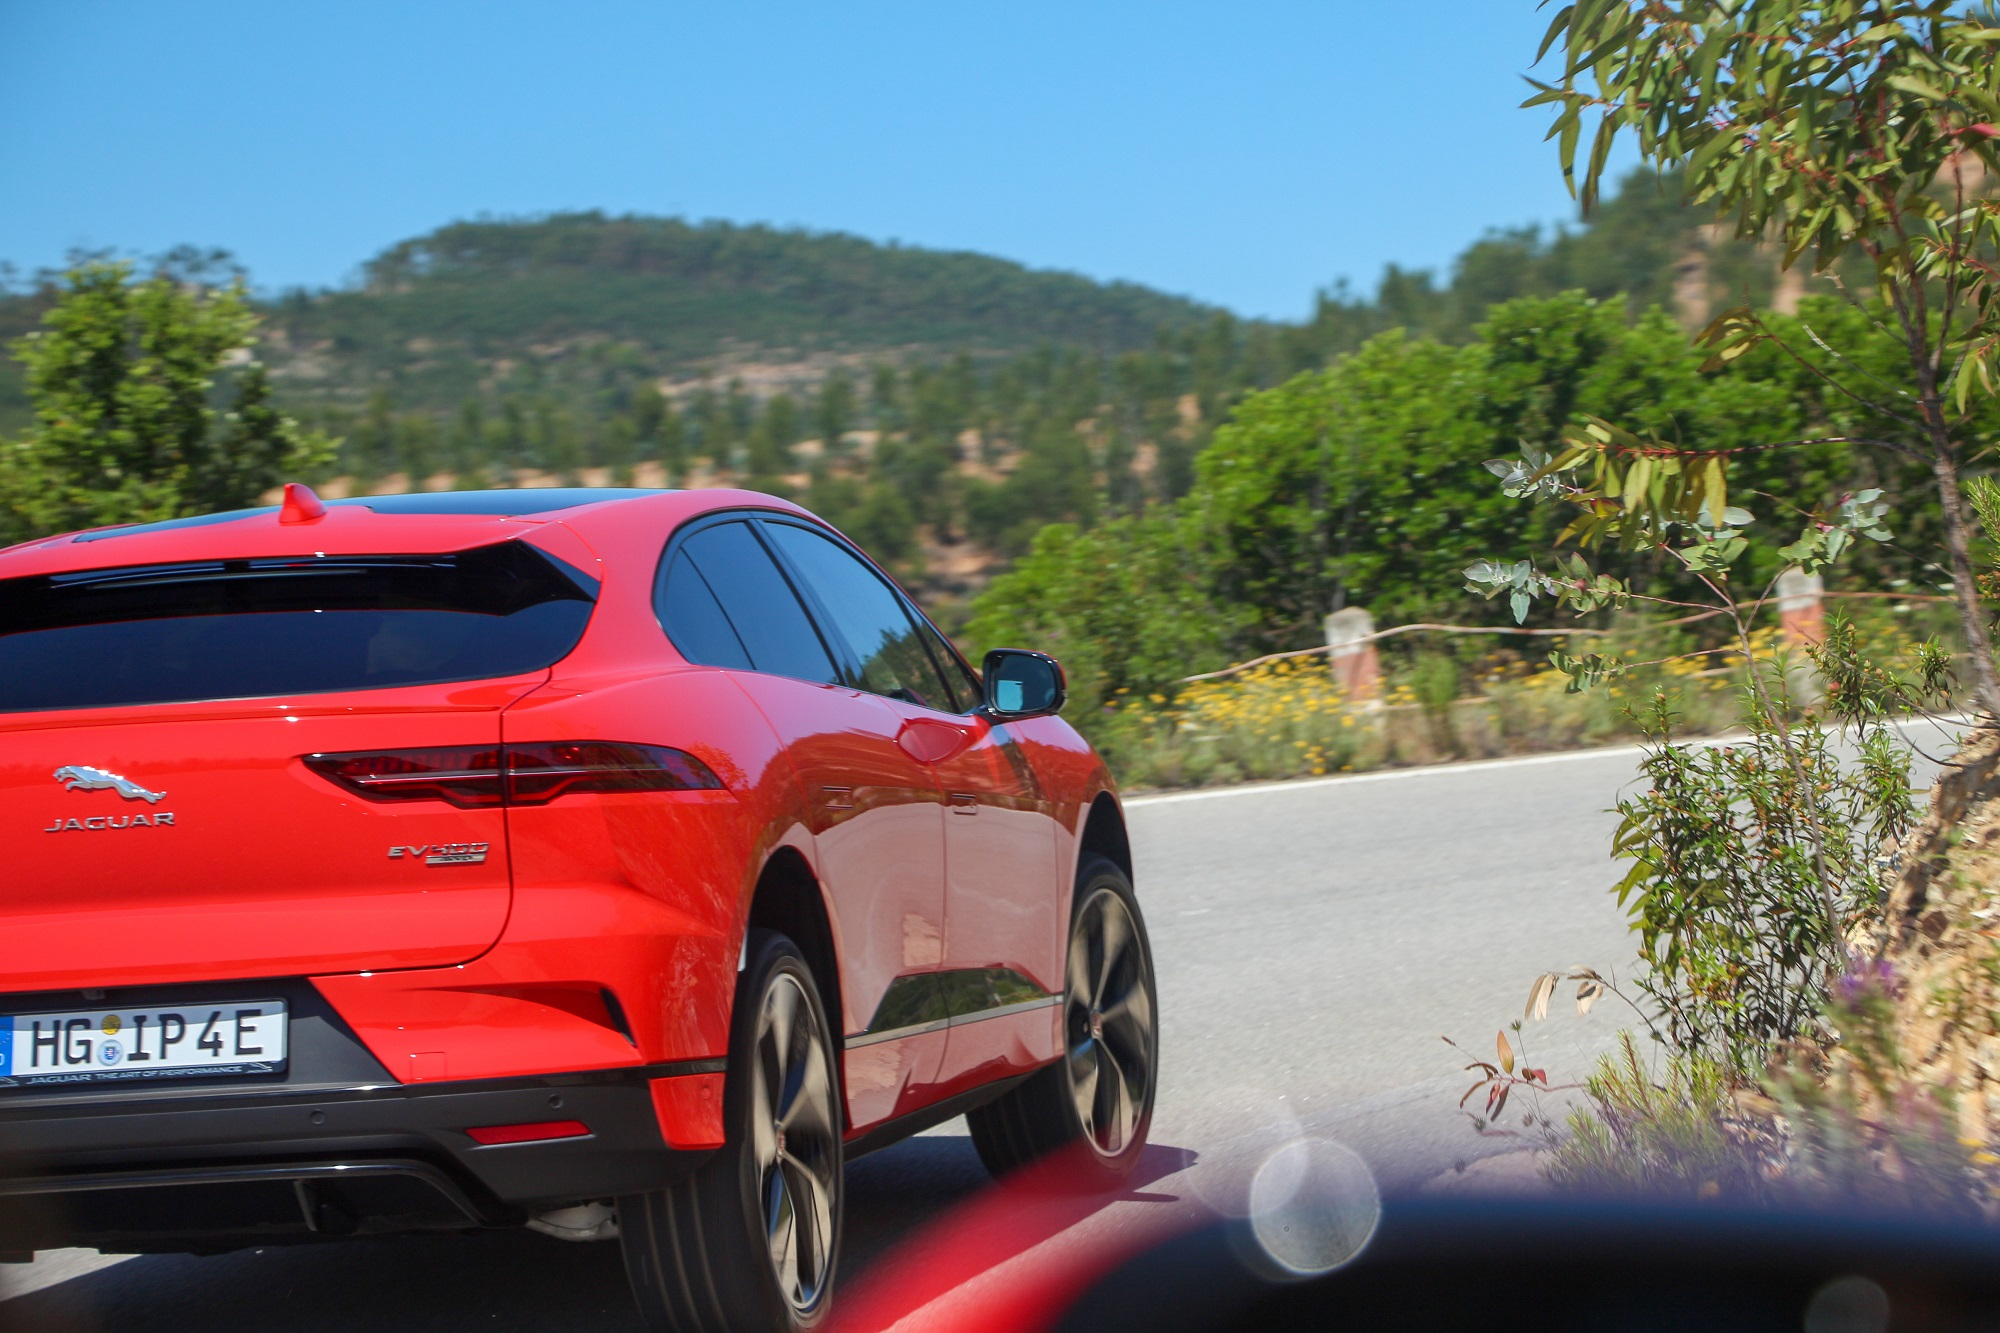 Jaguarforums.com 2018 2019 Jaguar I-PACE EV Electric Vehicle Review News Drive